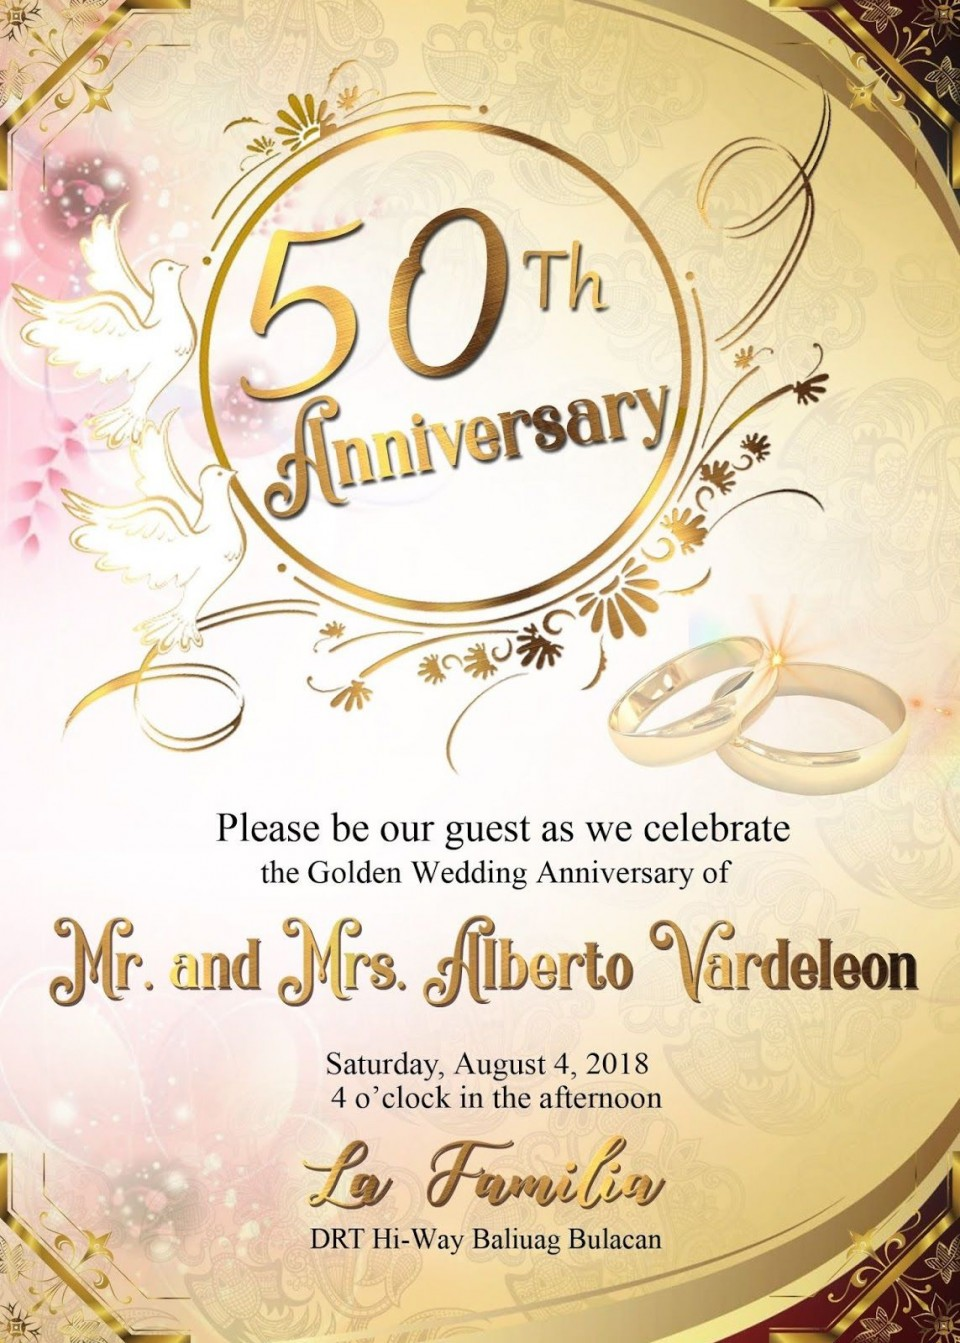 010 Stunning 50th Anniversary Party Invitation Template Example  Wedding Free Download Microsoft Word960